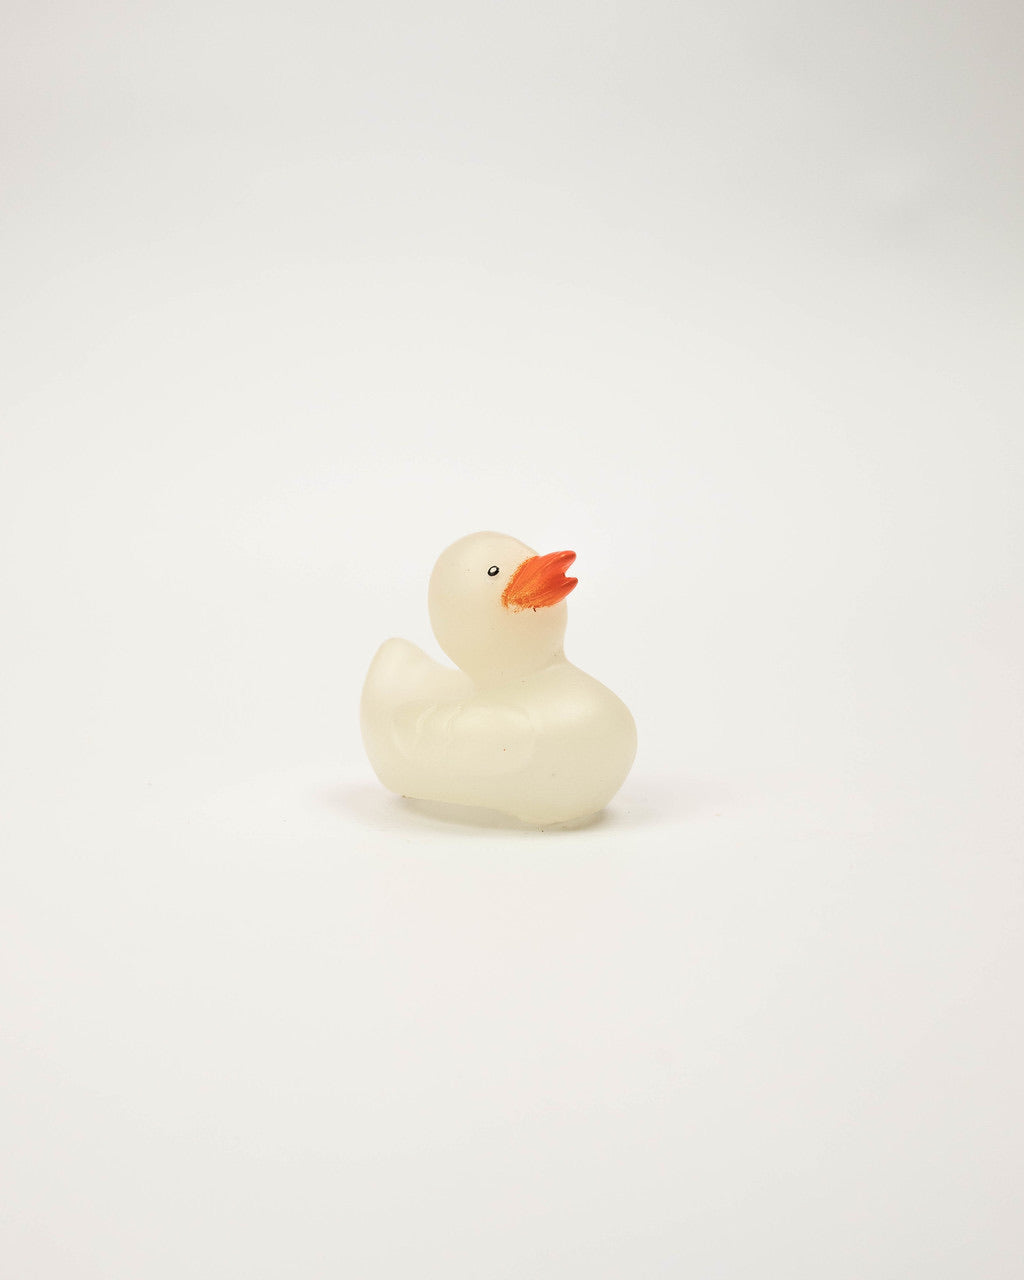 Musee Bath Bomb - Rubber Duckie - Monogram Gifts